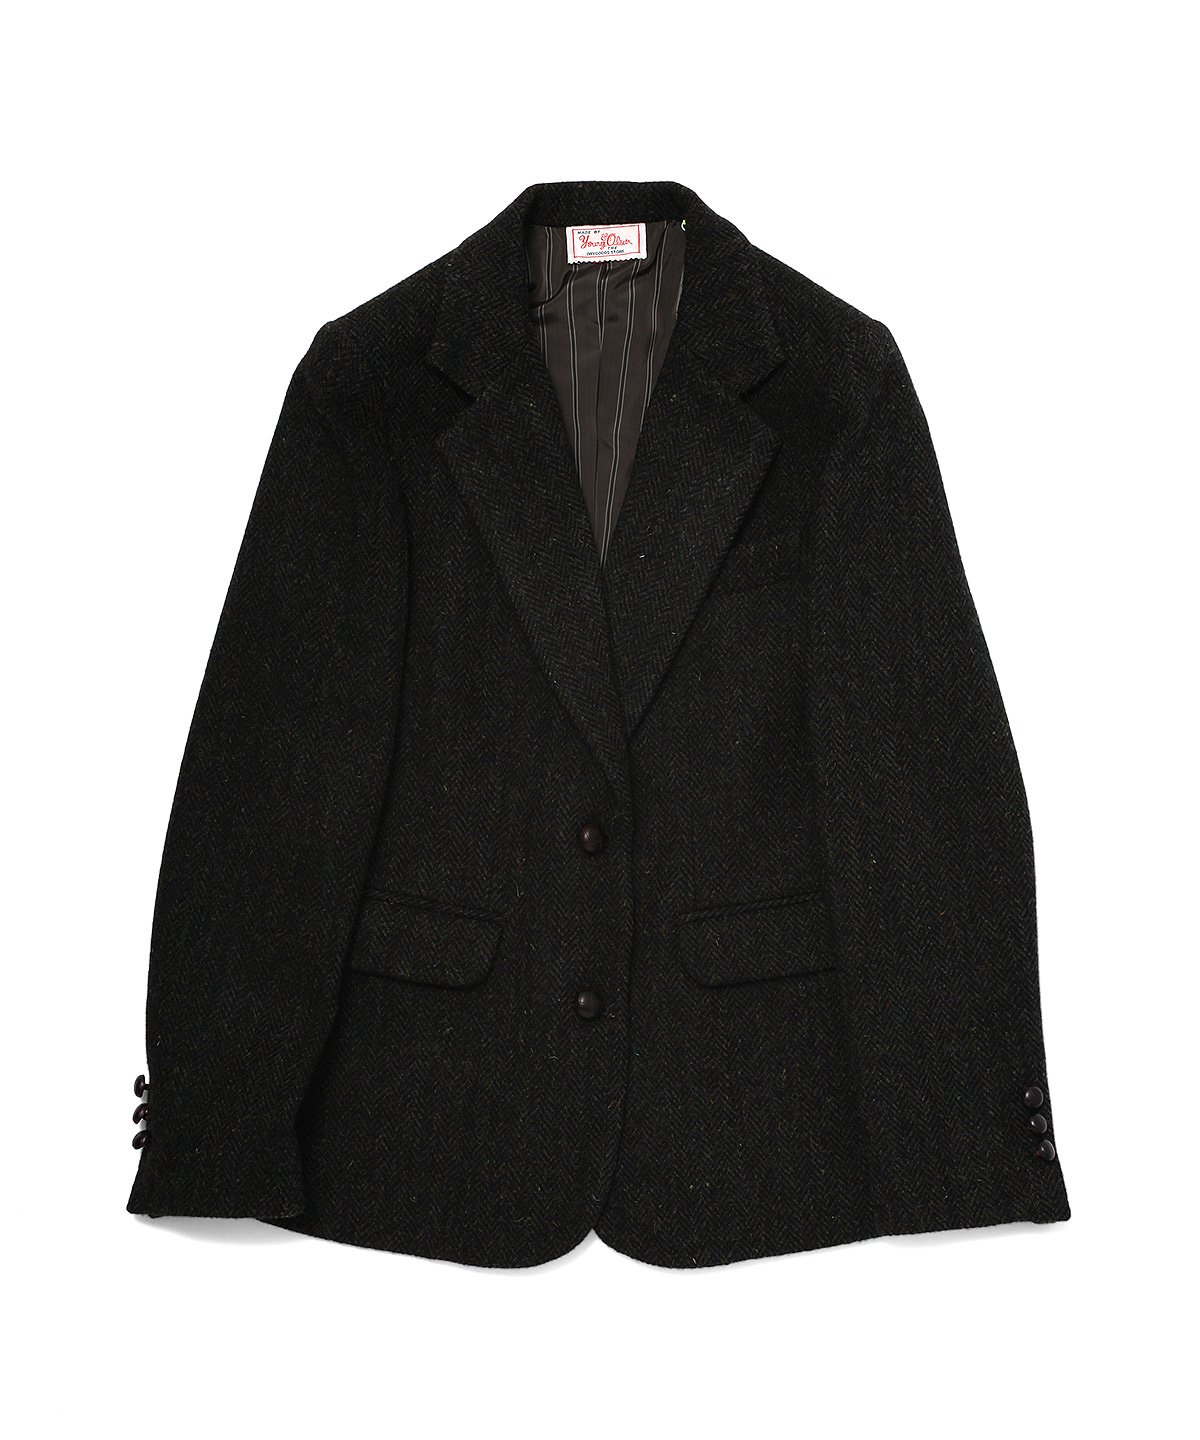 GENTLEWOMAN TWEED JACKET